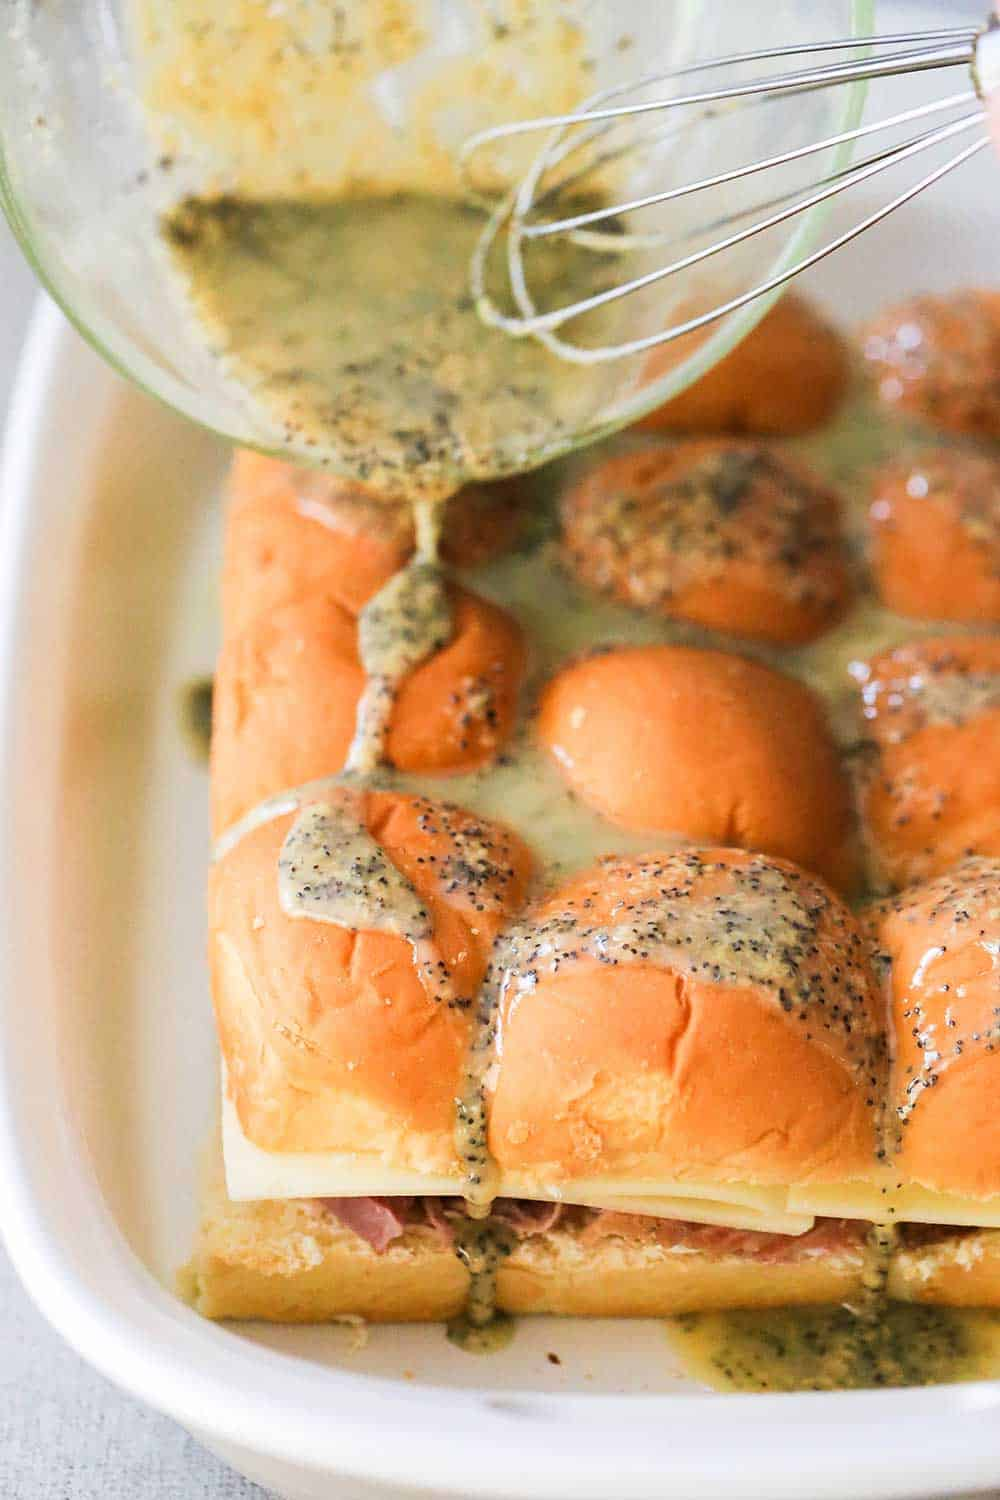 A hand pouring a butter sauce over the tops of ham and Swiss sliders in a white baking dish.